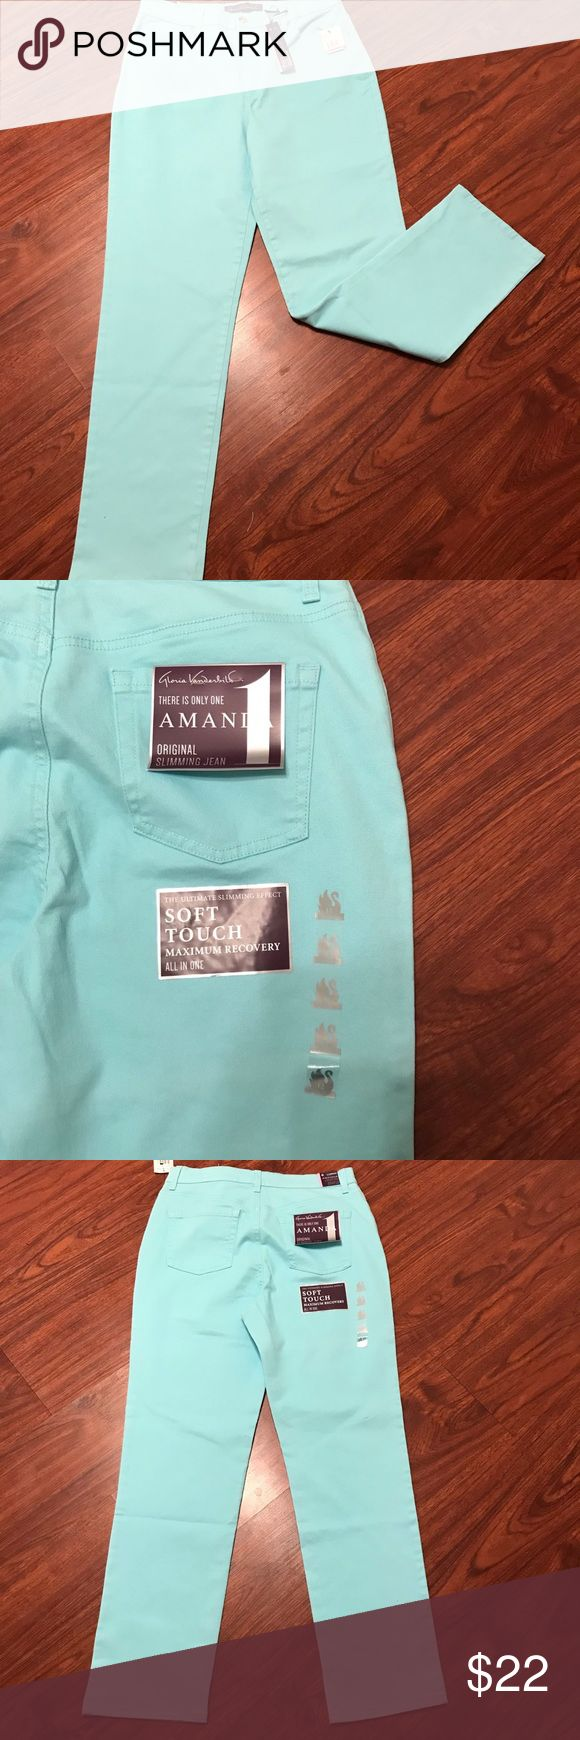 NWT light blue/sea foam colored jeans NWT never worn Gloria Vanderbilt colored jeans Amanda style. This is a beautiful sea foam color. 98% cotton and 3% elastane blend to give a comfortable fit. Last picture shown is to give an example of the fit. Smoke free home.  Check out my other listings for a bundled discount.   Available in size 2 and three pairs in size 12. Jeans Straight Leg